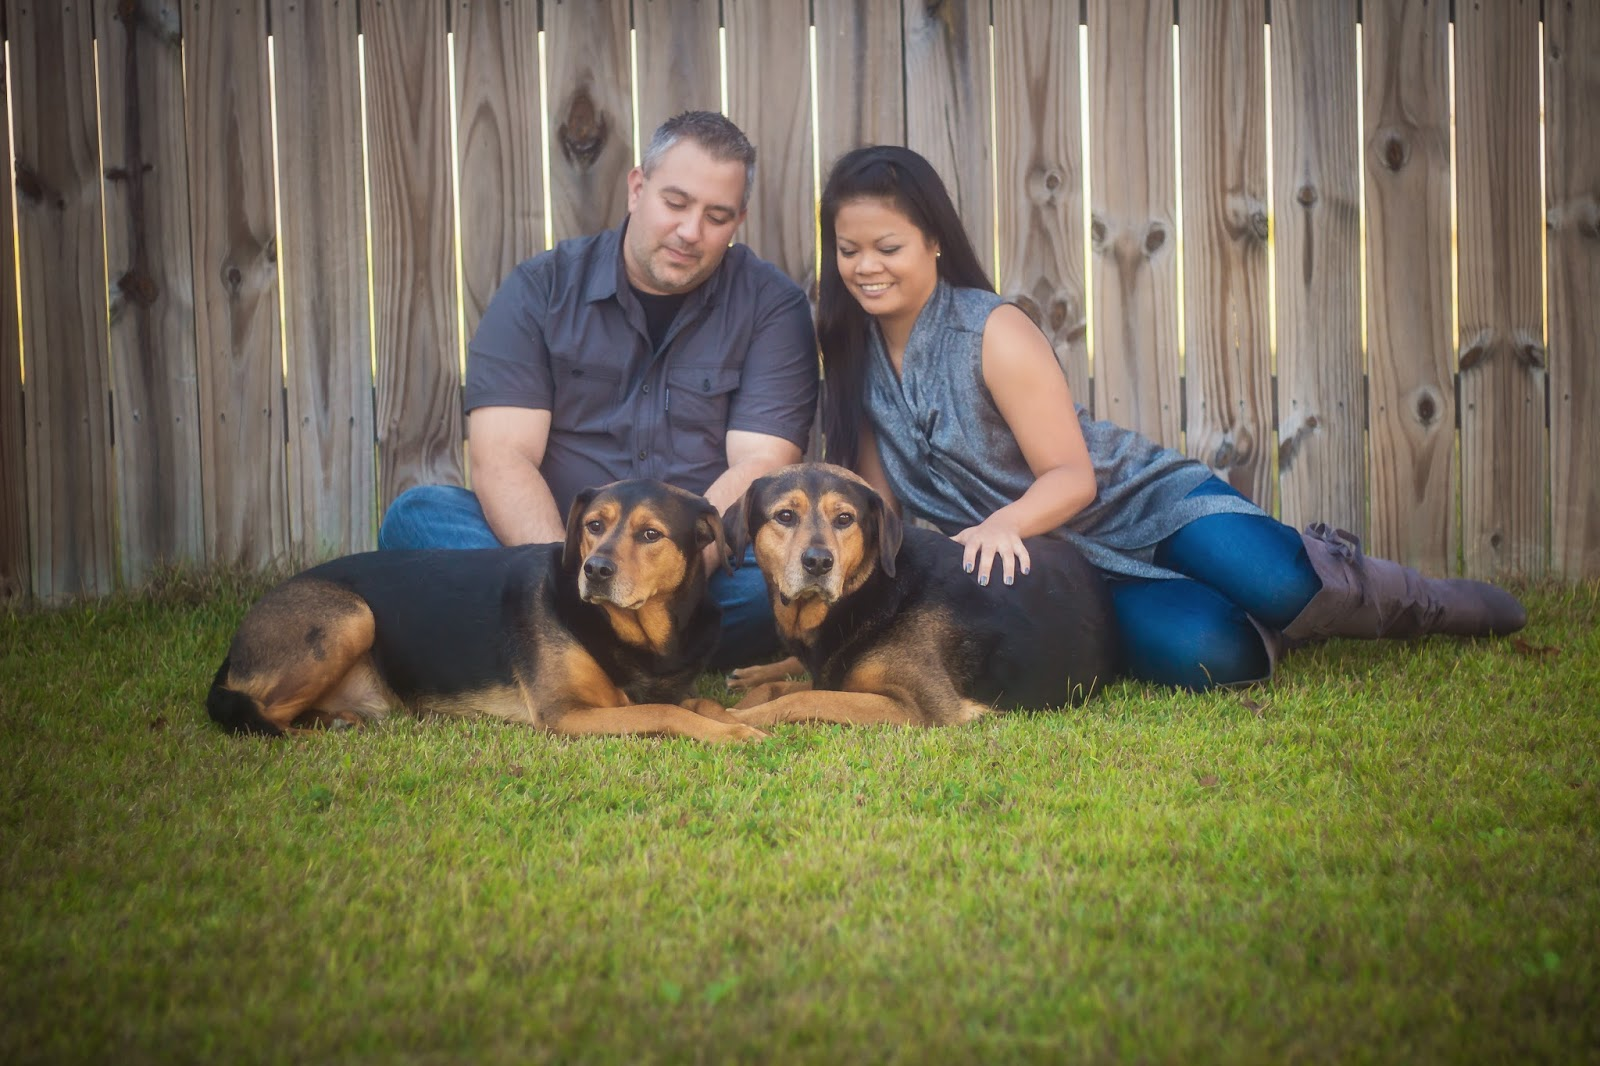 Justin Amy Our Family Engagement Session Greenville NC Photographer Bryant Tyson Photography 4